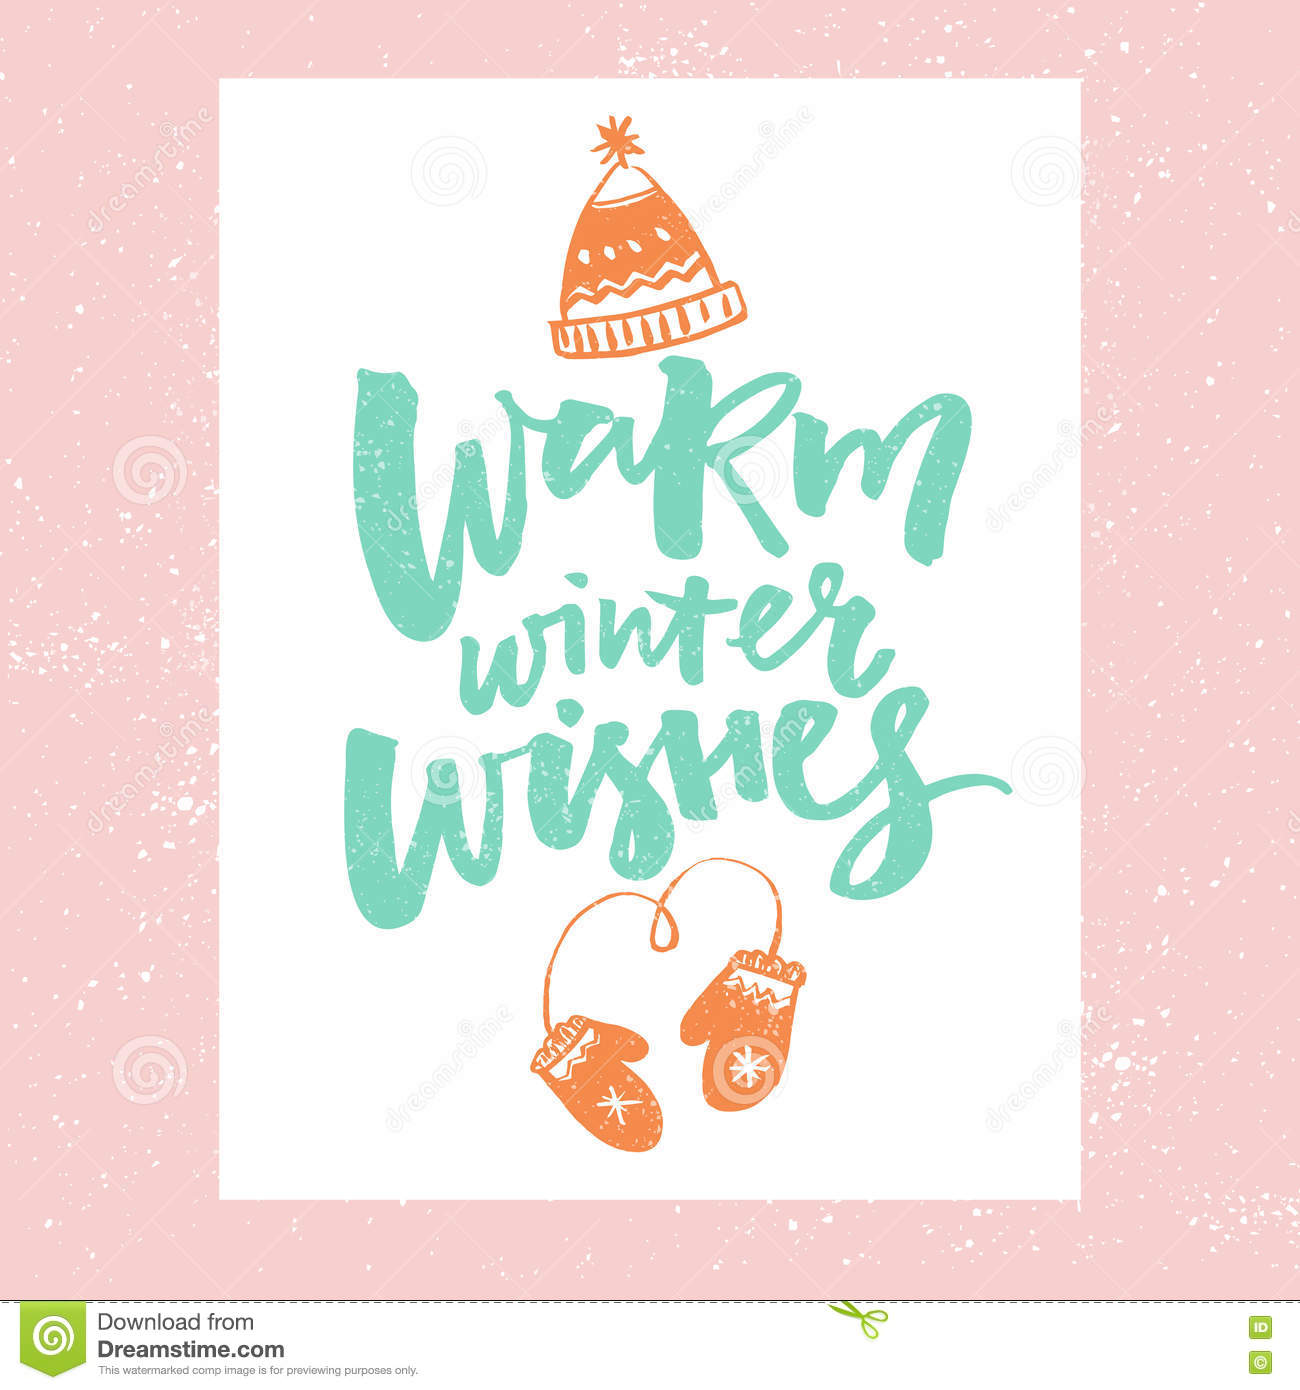 Warm Winter Wishes Christmas Card Design Vector Typography With